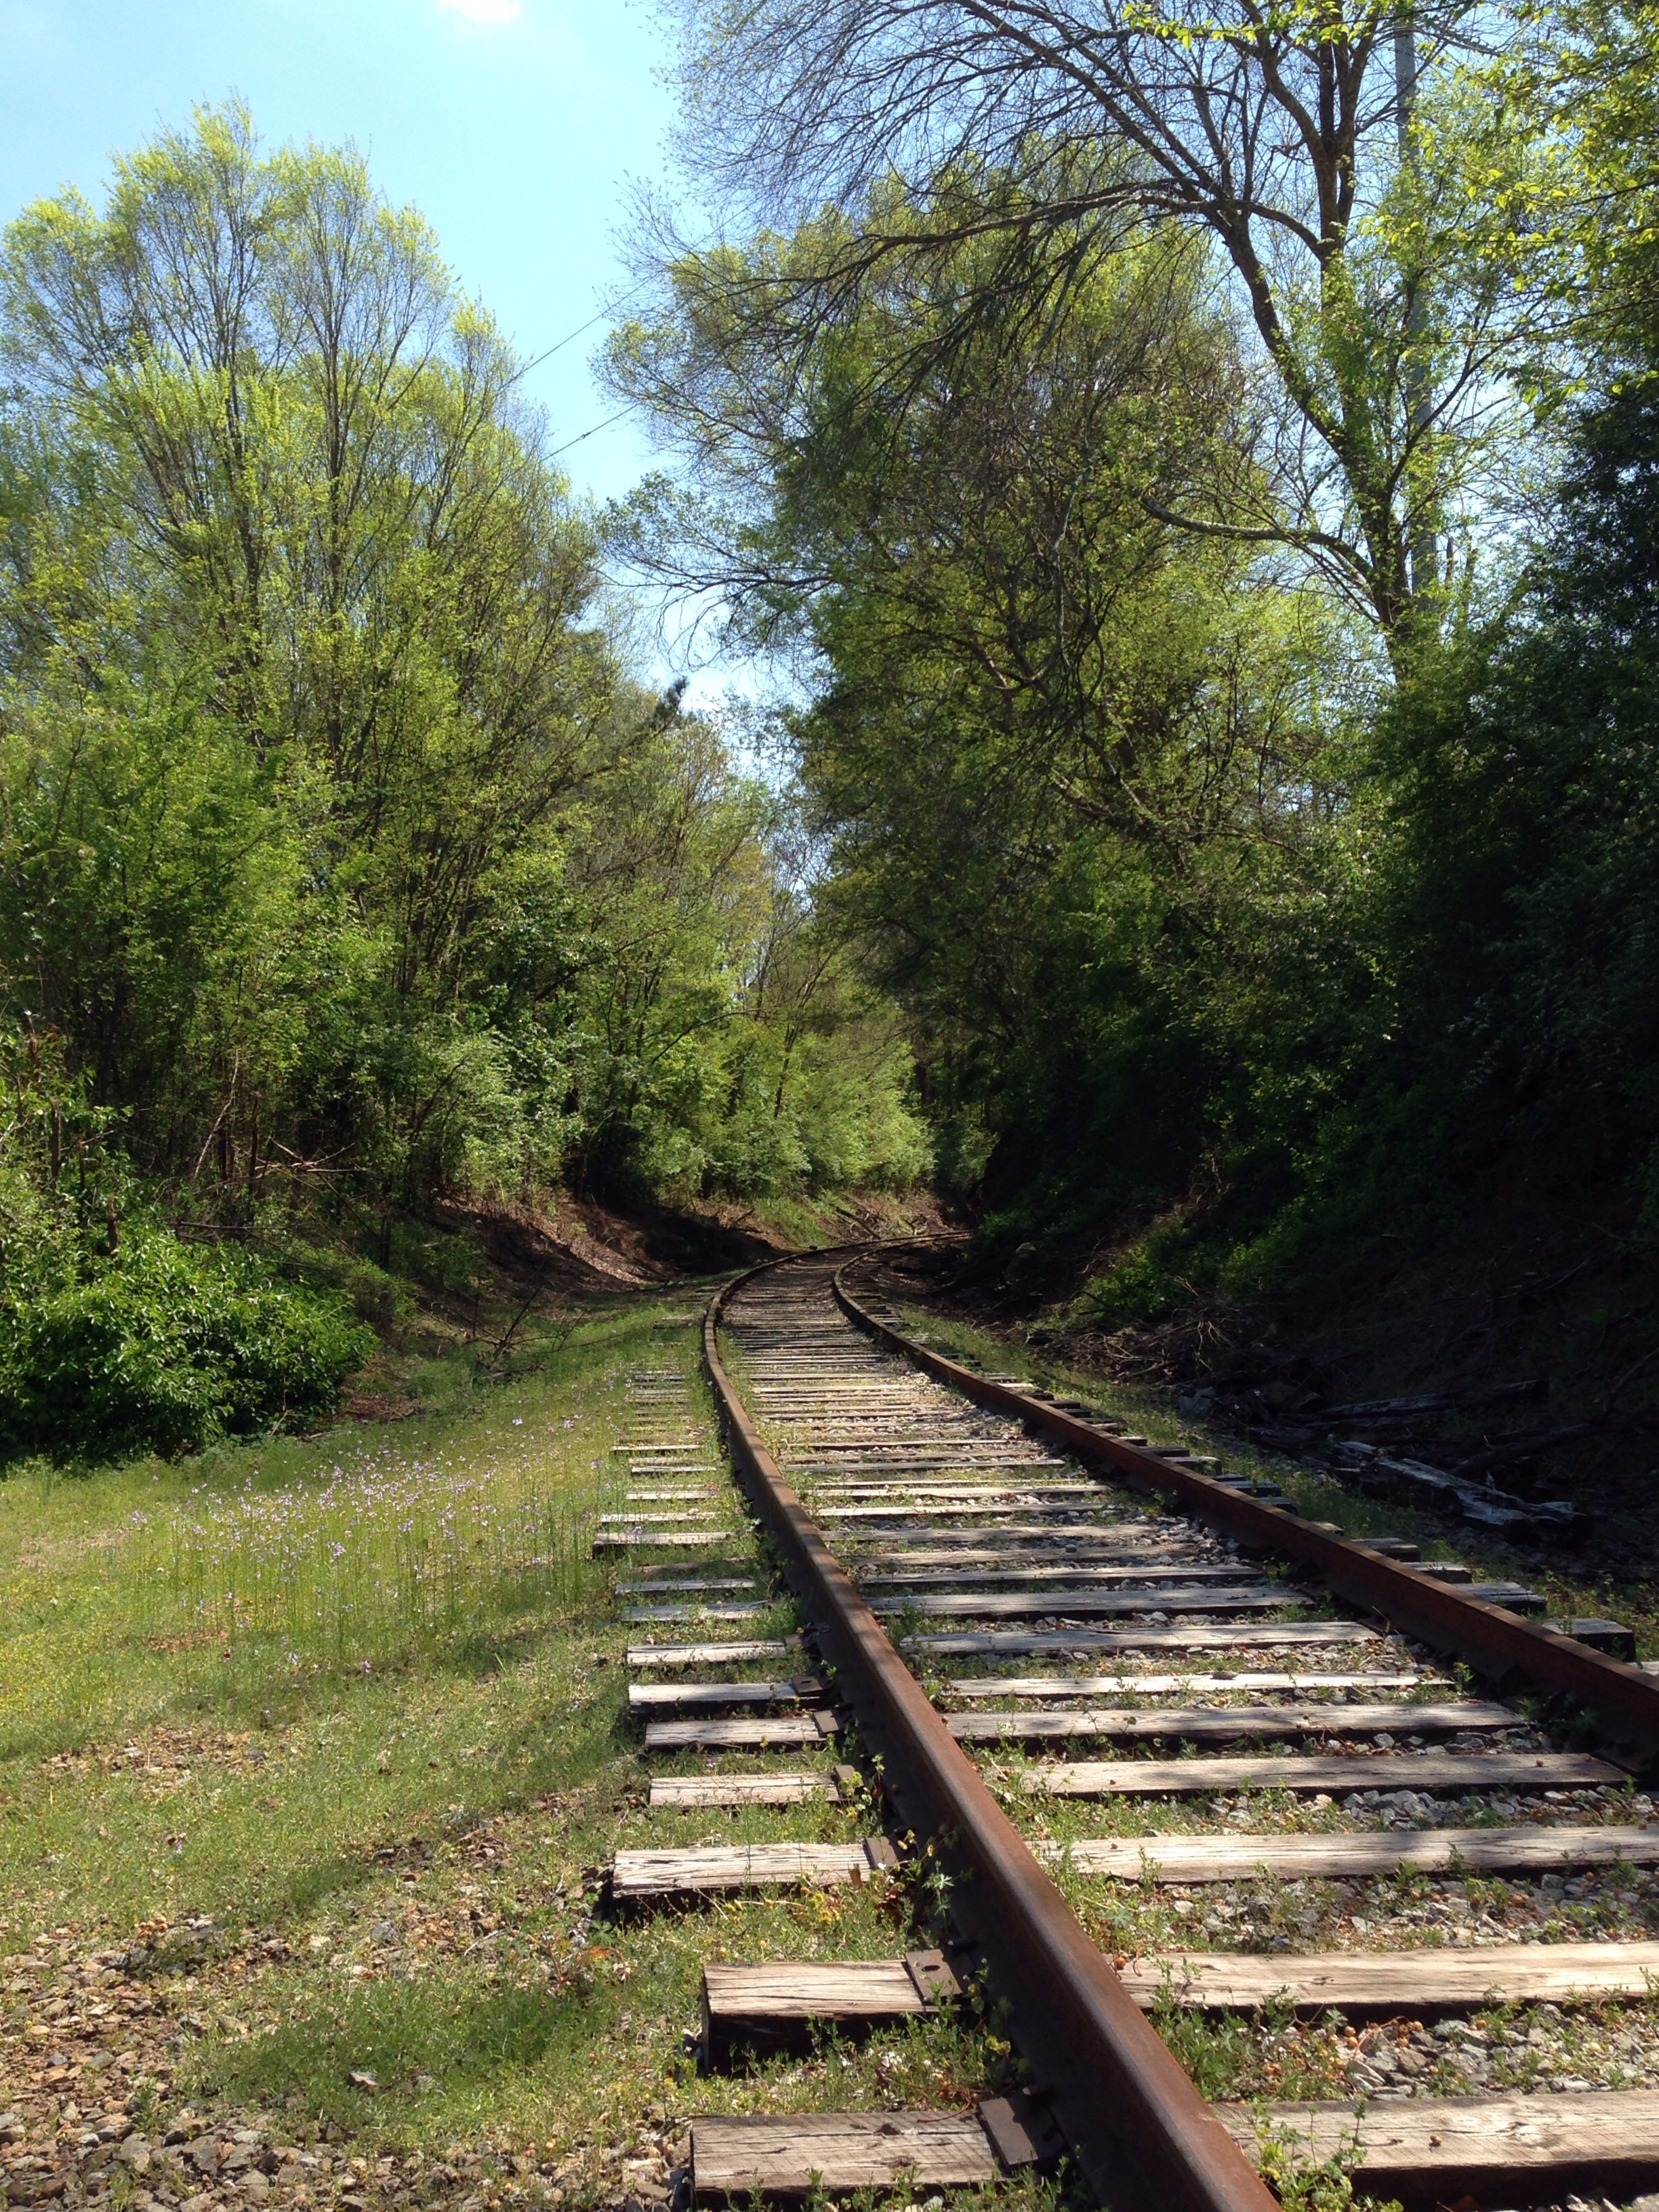 The train tracks on East Campus Road